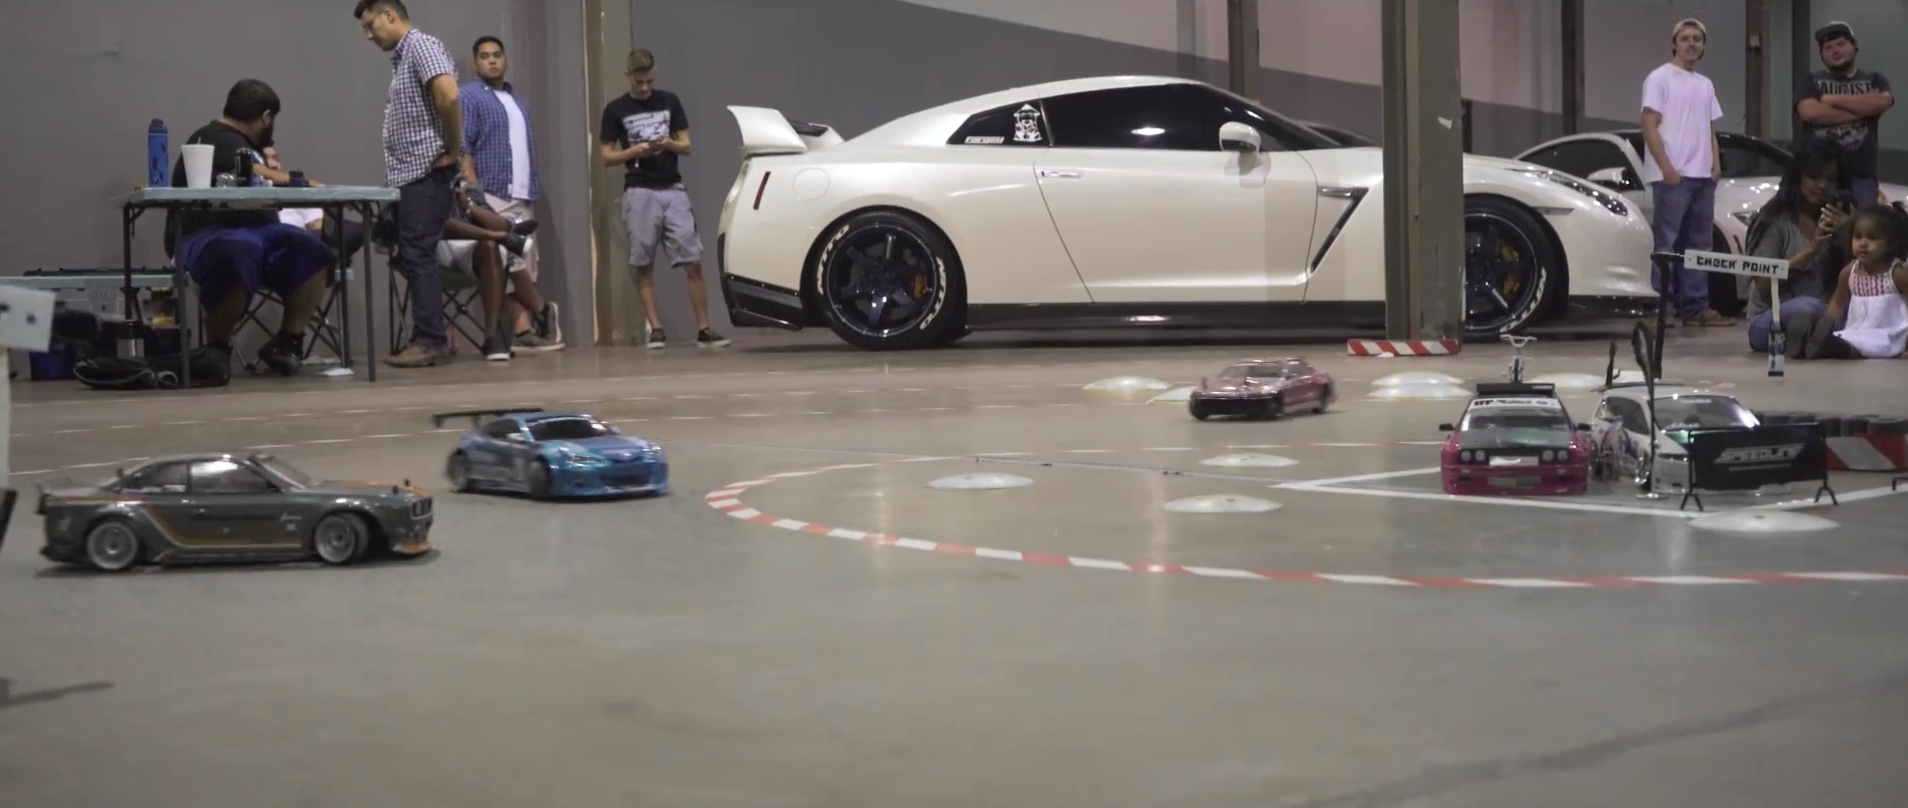 RC Drift Demo/Comp